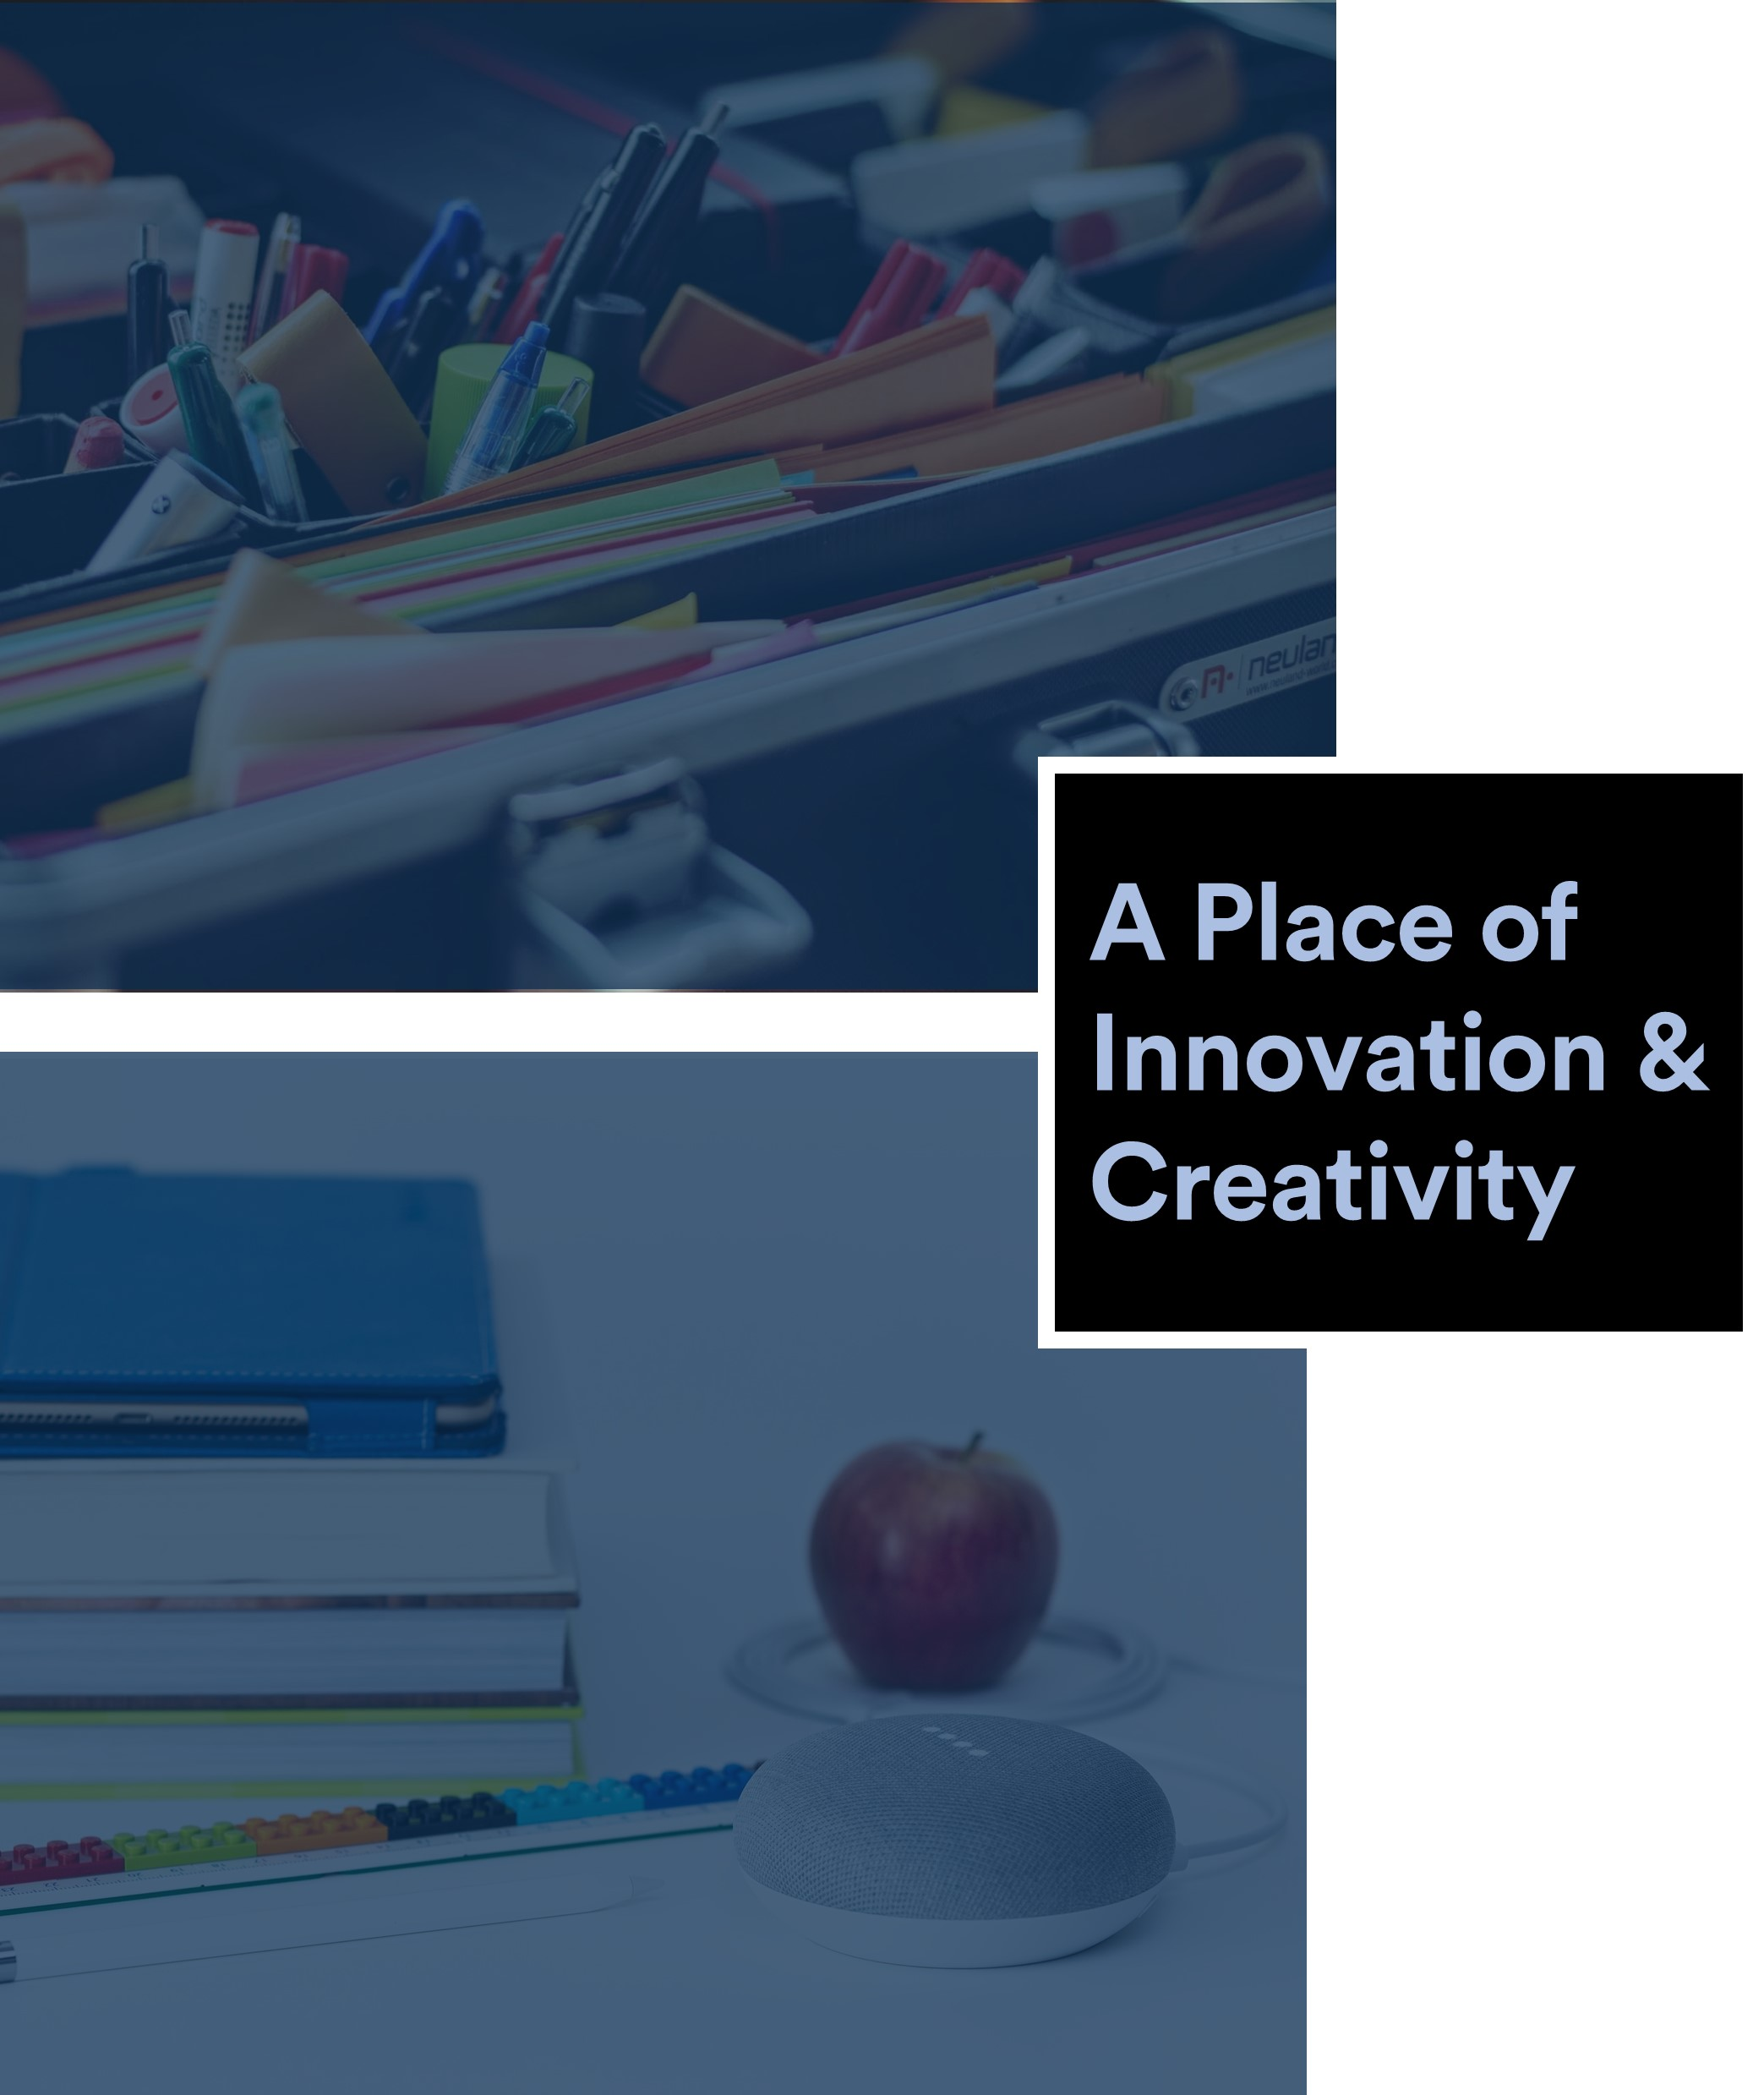 a place of innovation and creativity